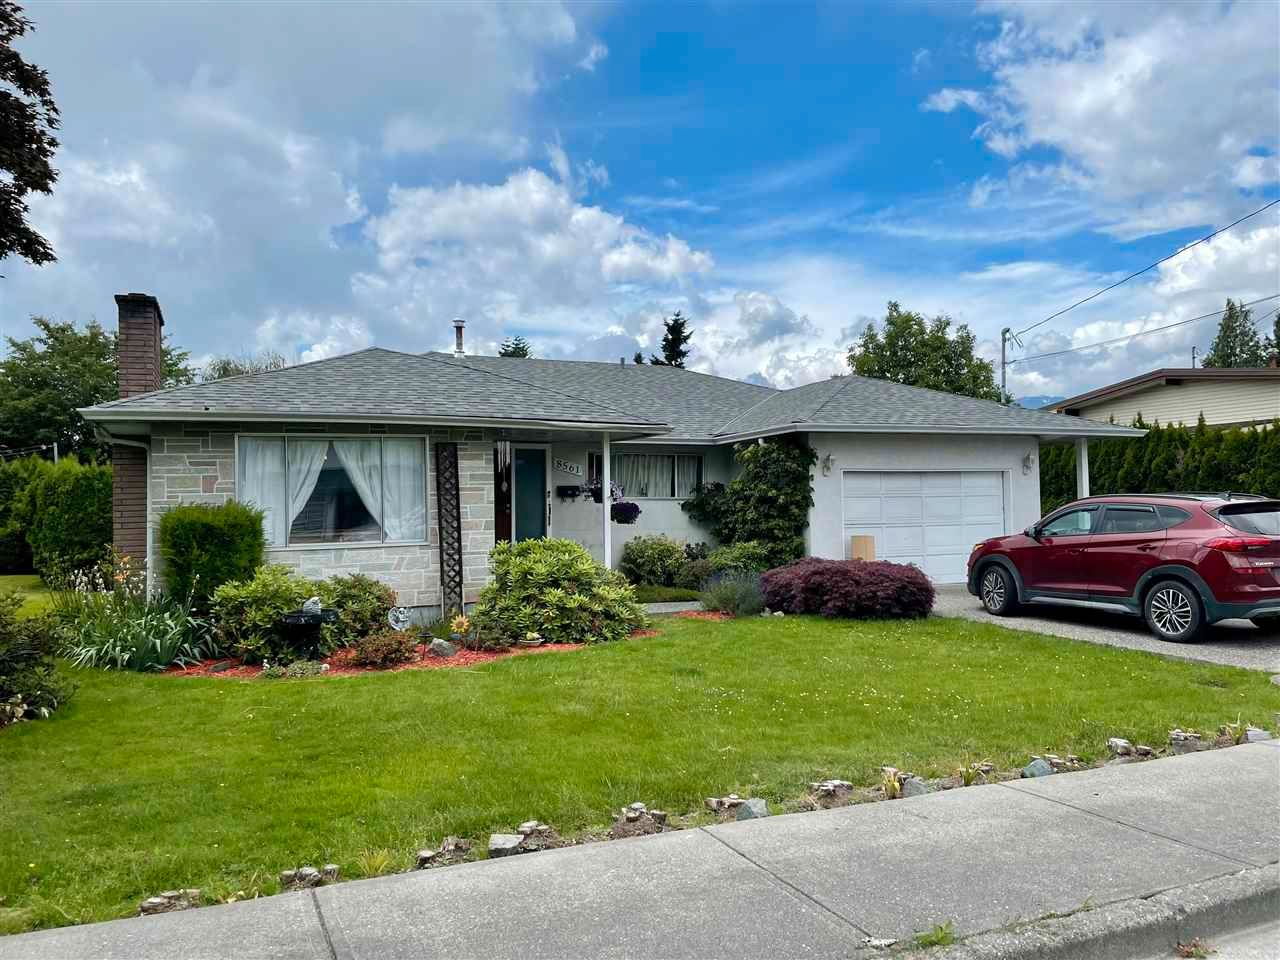 Main Photo: 8561 BROADWAY Street in Chilliwack: Chilliwack E Young-Yale House for sale : MLS®# R2593236